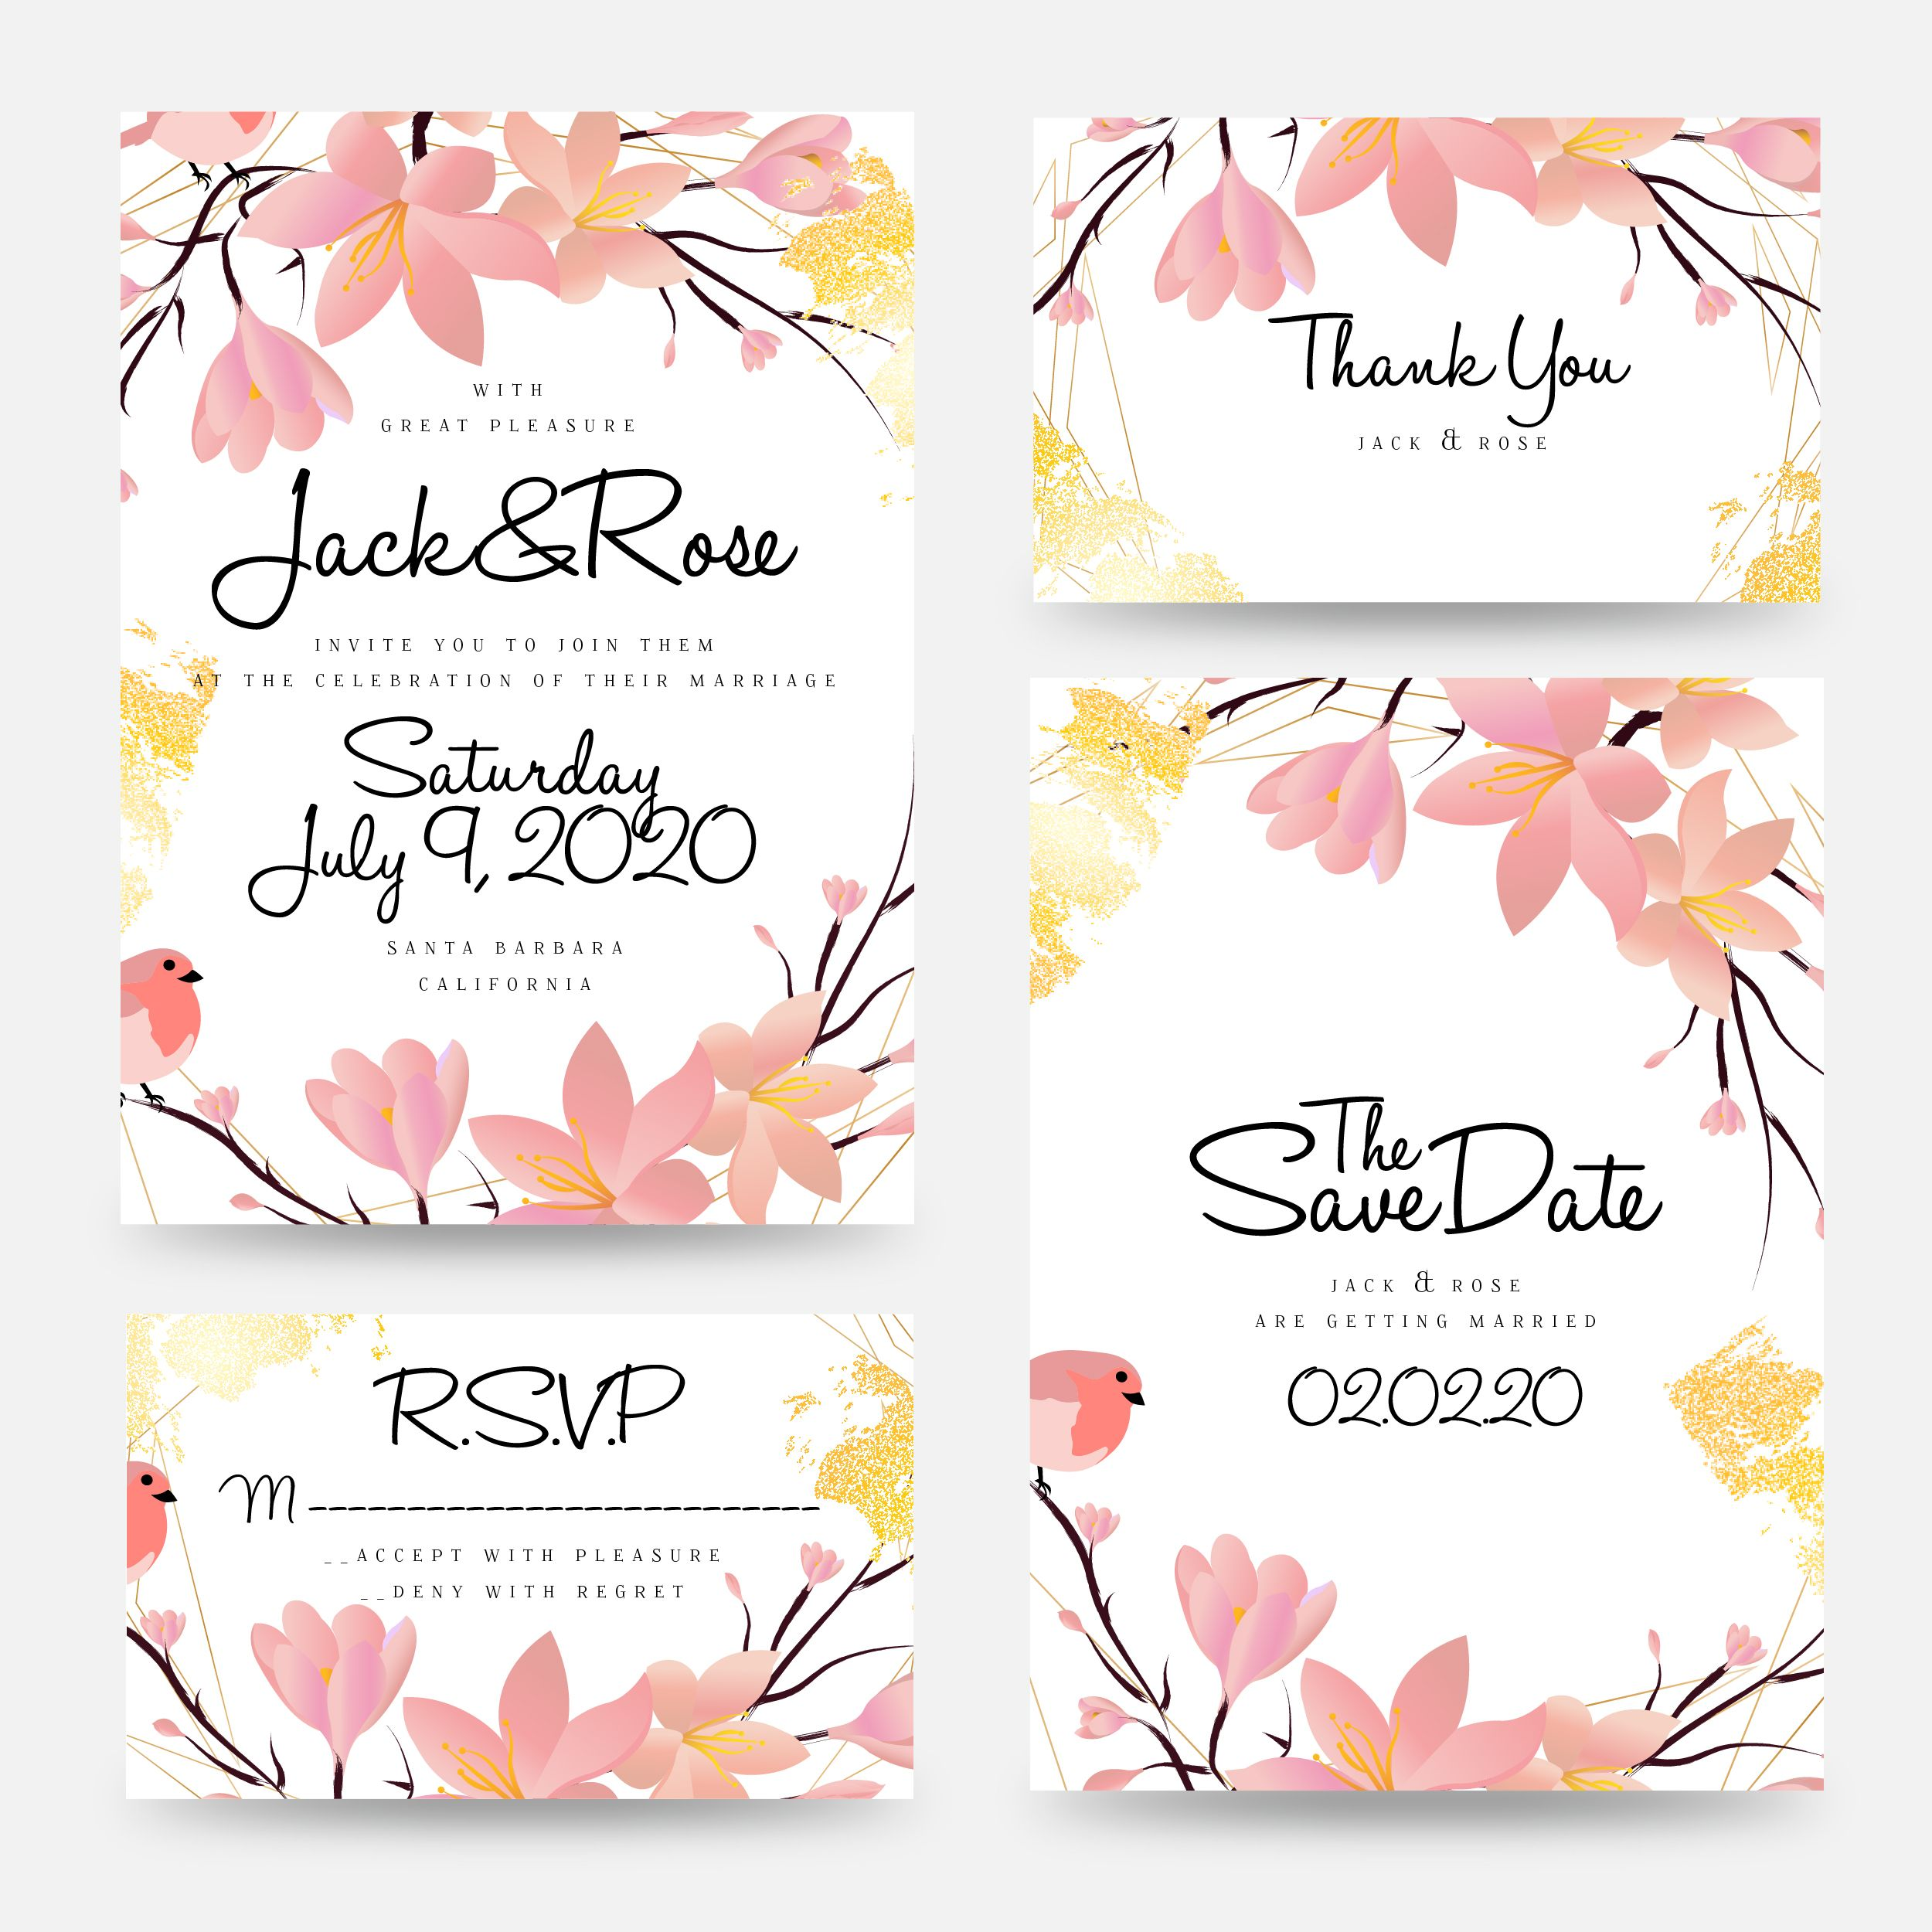 Wedding Invitation Card Template Collection In 2020 Wedding Invitation Card Template Floral Wedding Invitation Card Flower Wedding Invitation